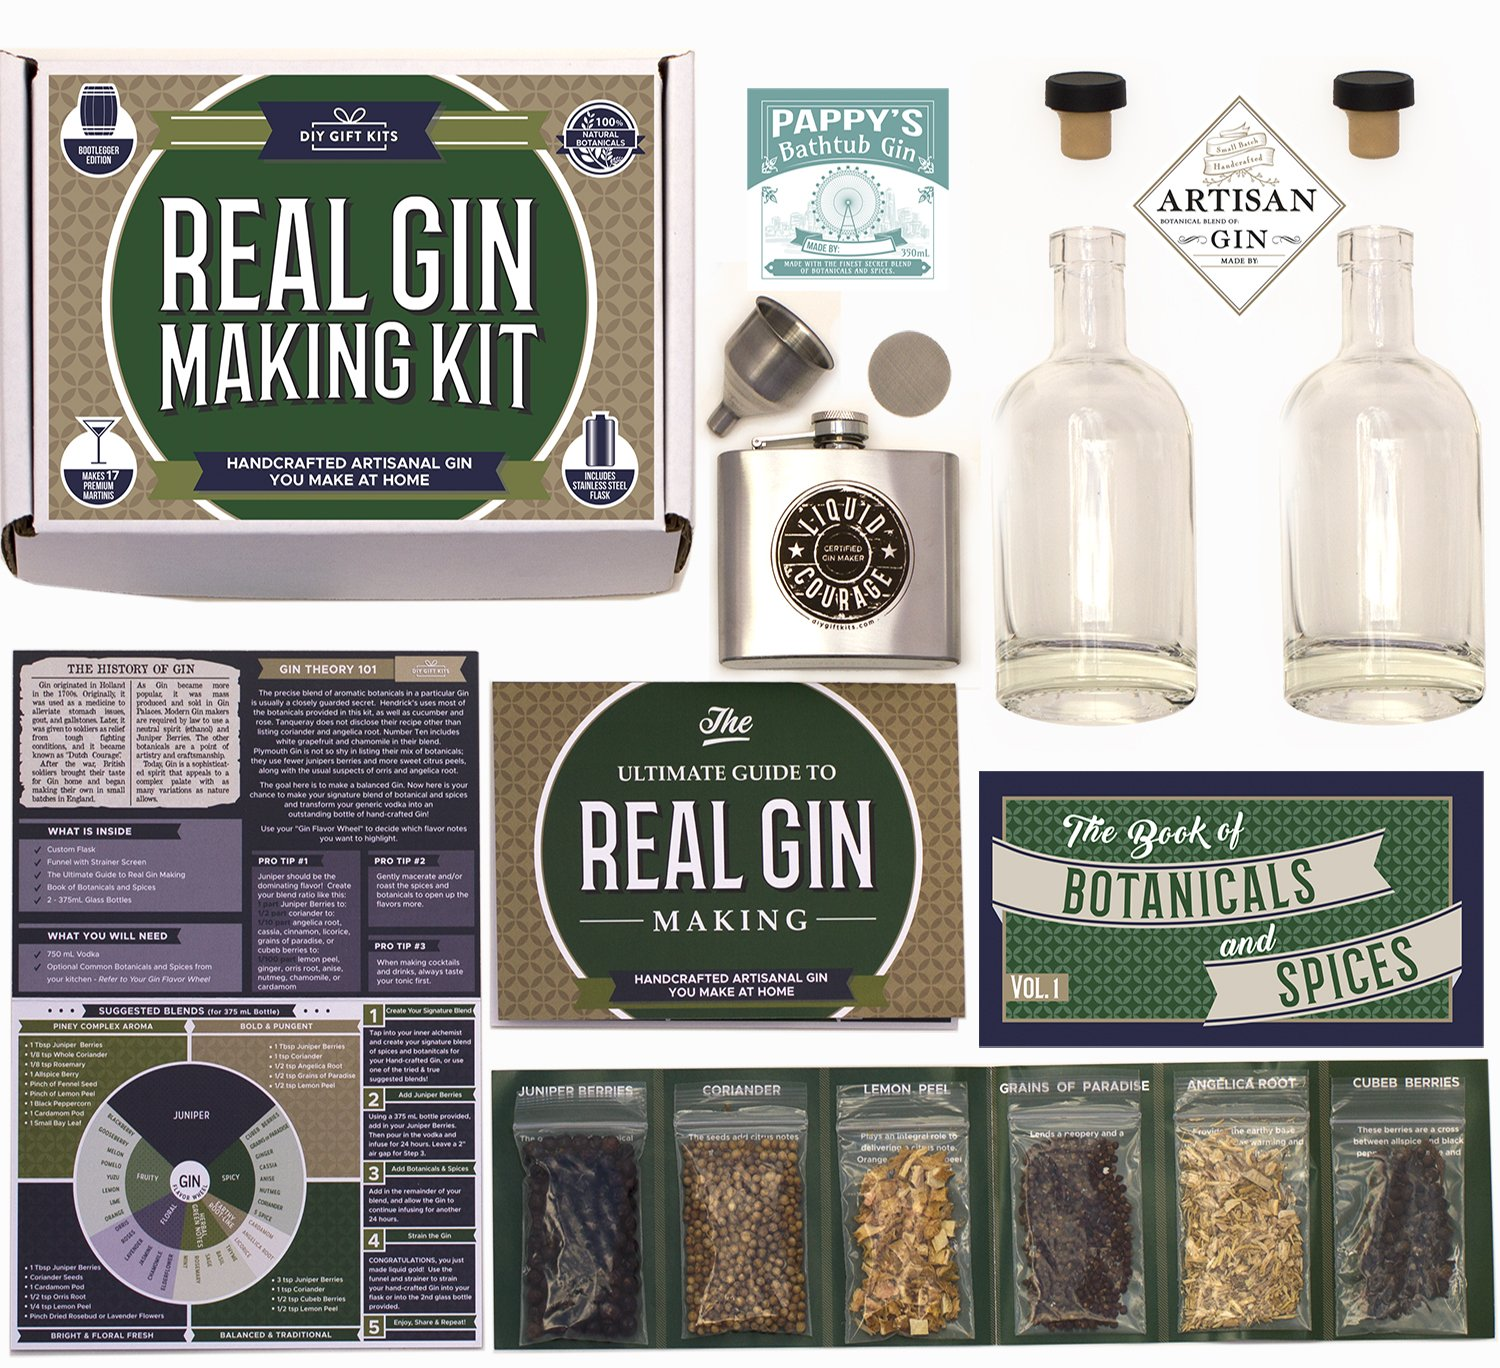 Real Homemade Gin Kit & Stainless Steel Personalized Flask, For Making Delicious Martinis, Gin and Tonics, Spirits & Cocktails At Home | Botanicals, Recipe Guides, Bottles & Labels & More Real Kit Co